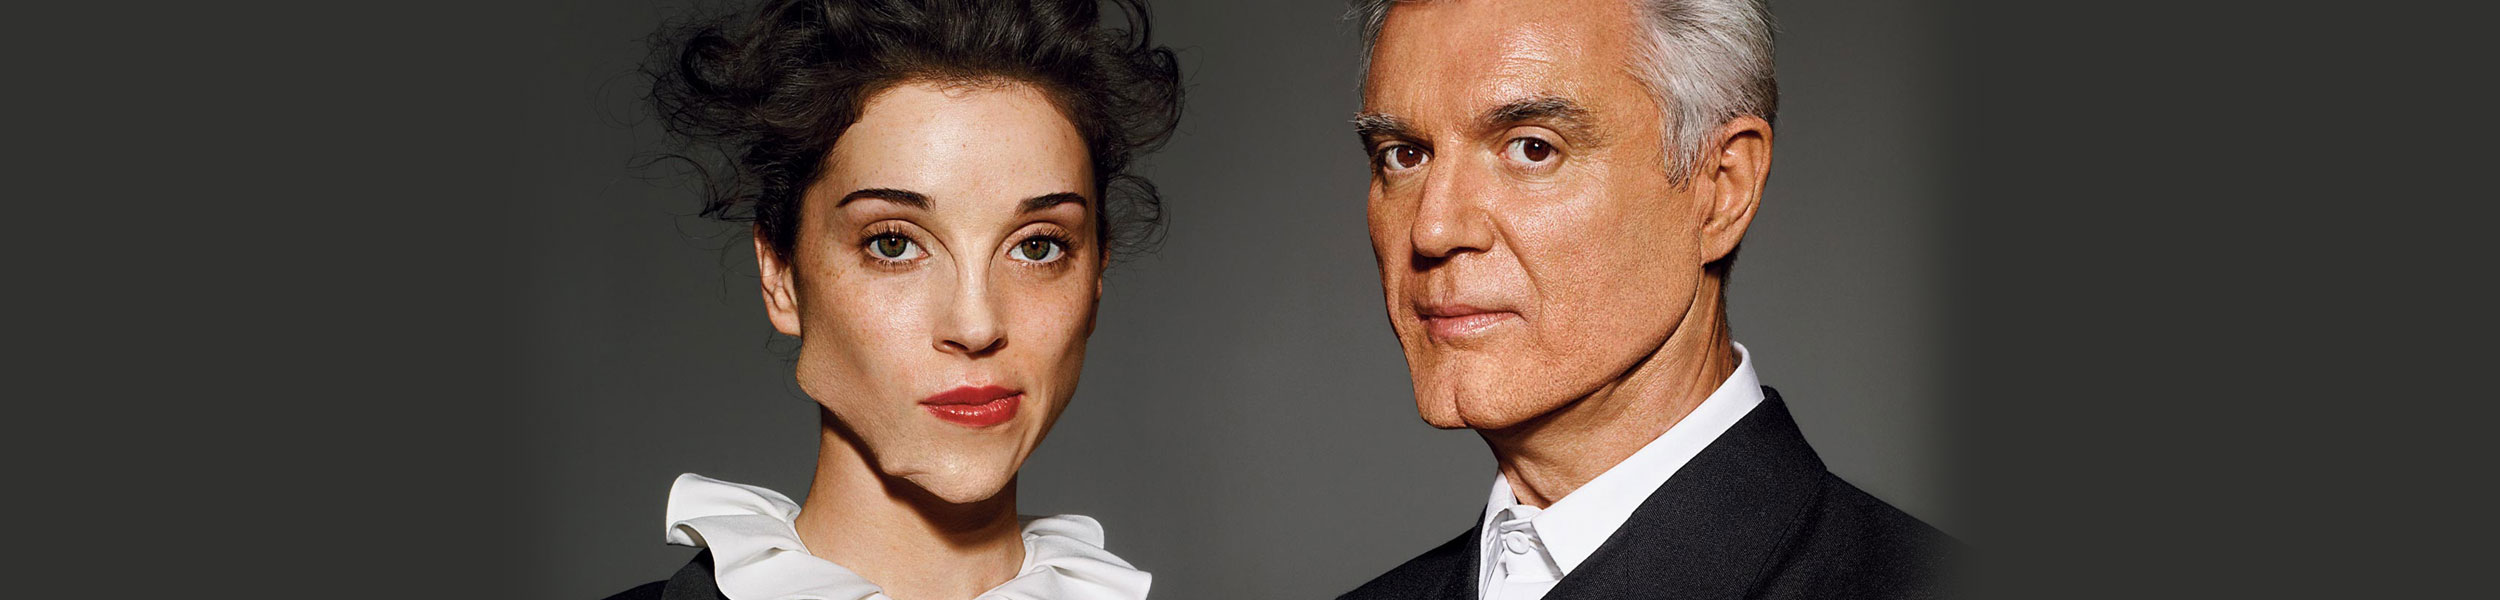 David Byrne & St. Vincent - David Byrne & St. Vincent Announce Brass Tactics EP Out May 28